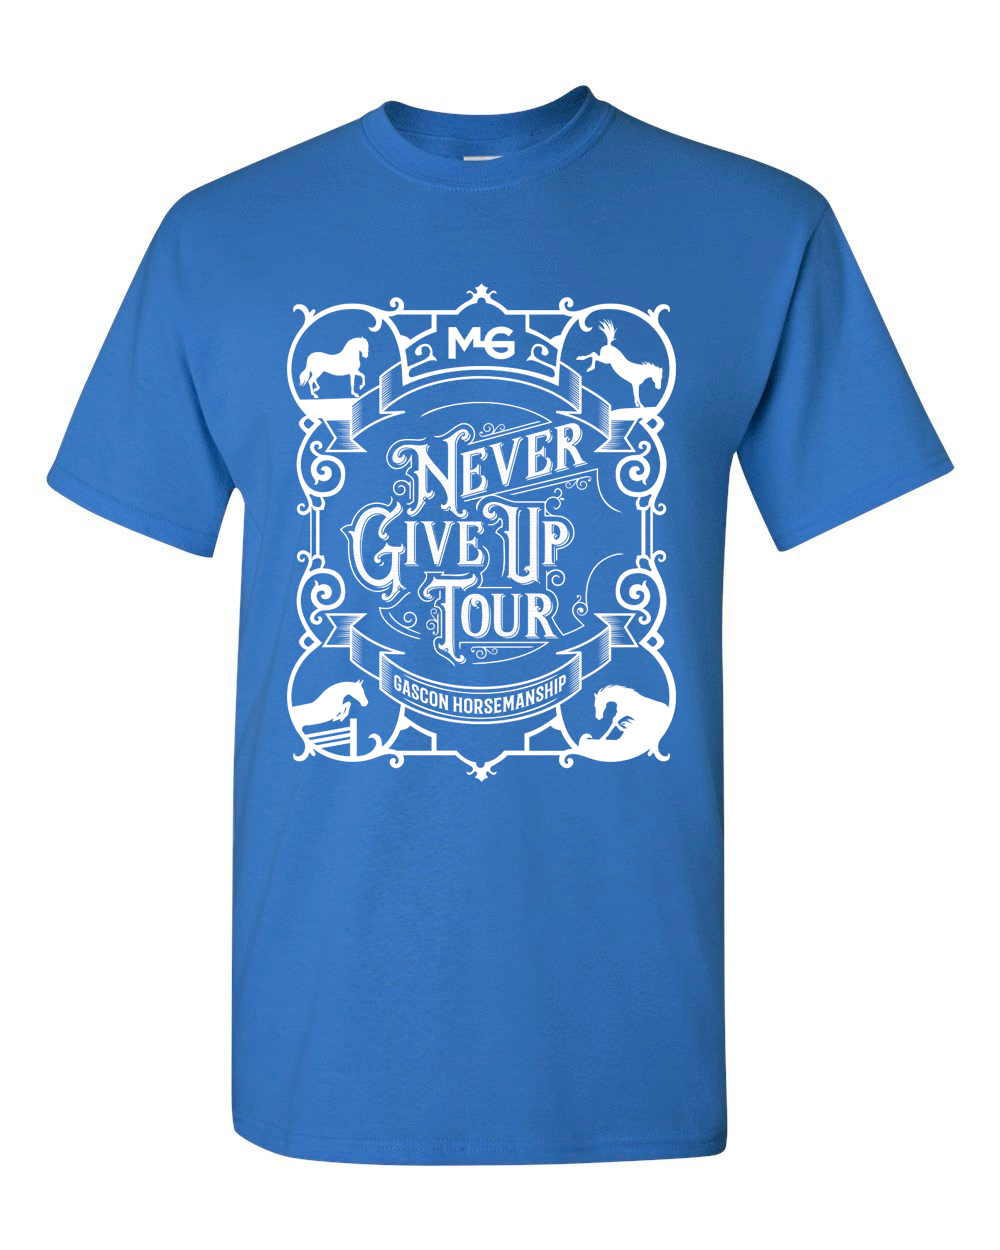 copy-of-thg-never-give-up-t-shirt_image